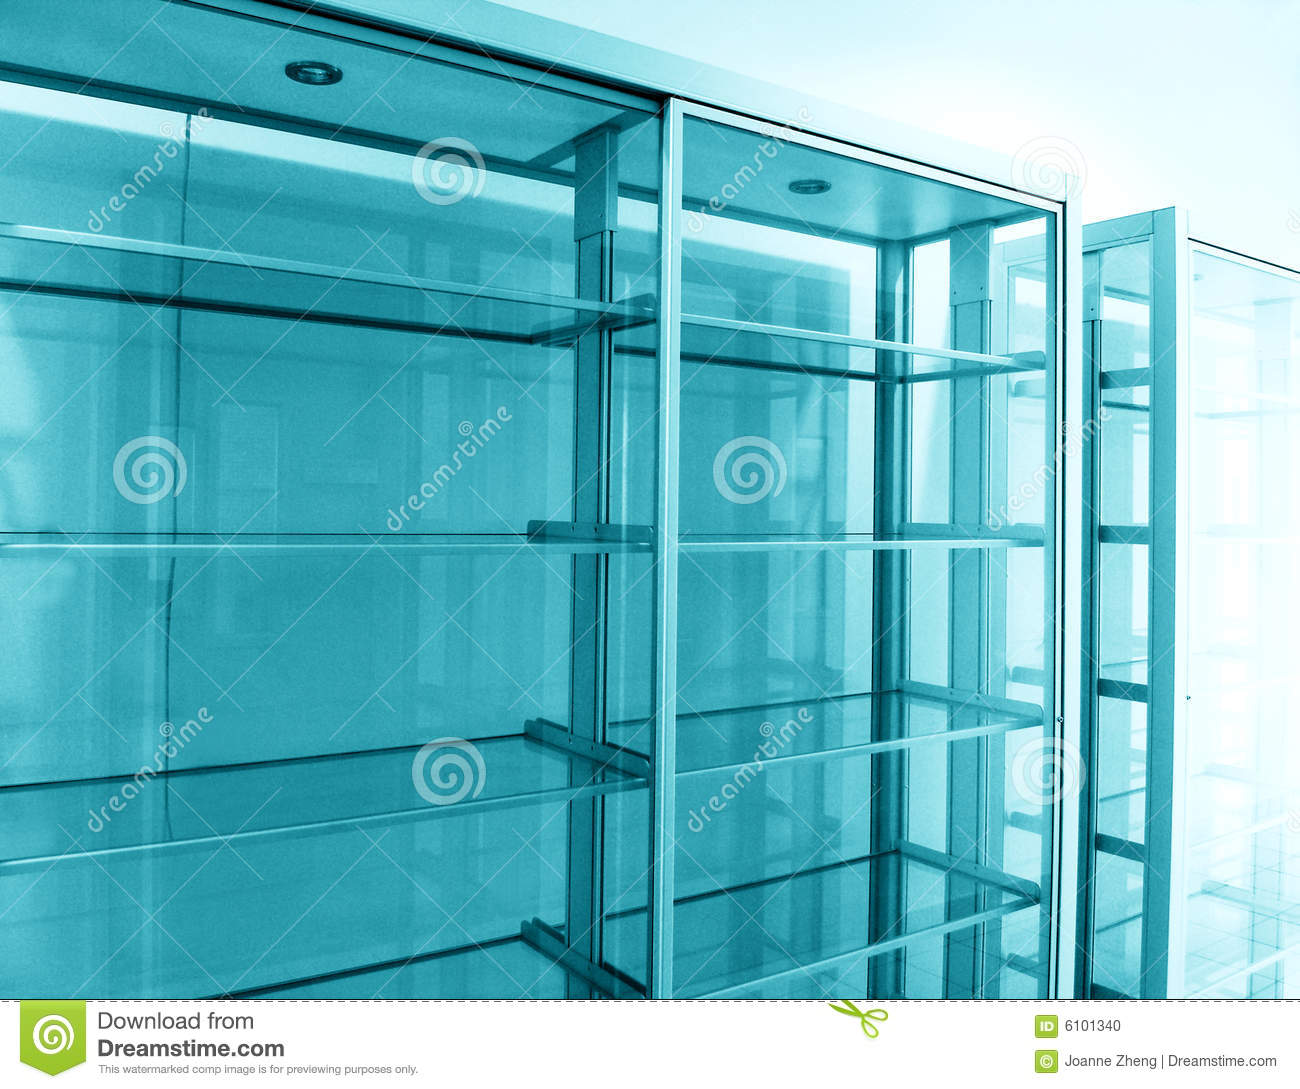 Glass Shelf Empty Stock Photo Image 6101340